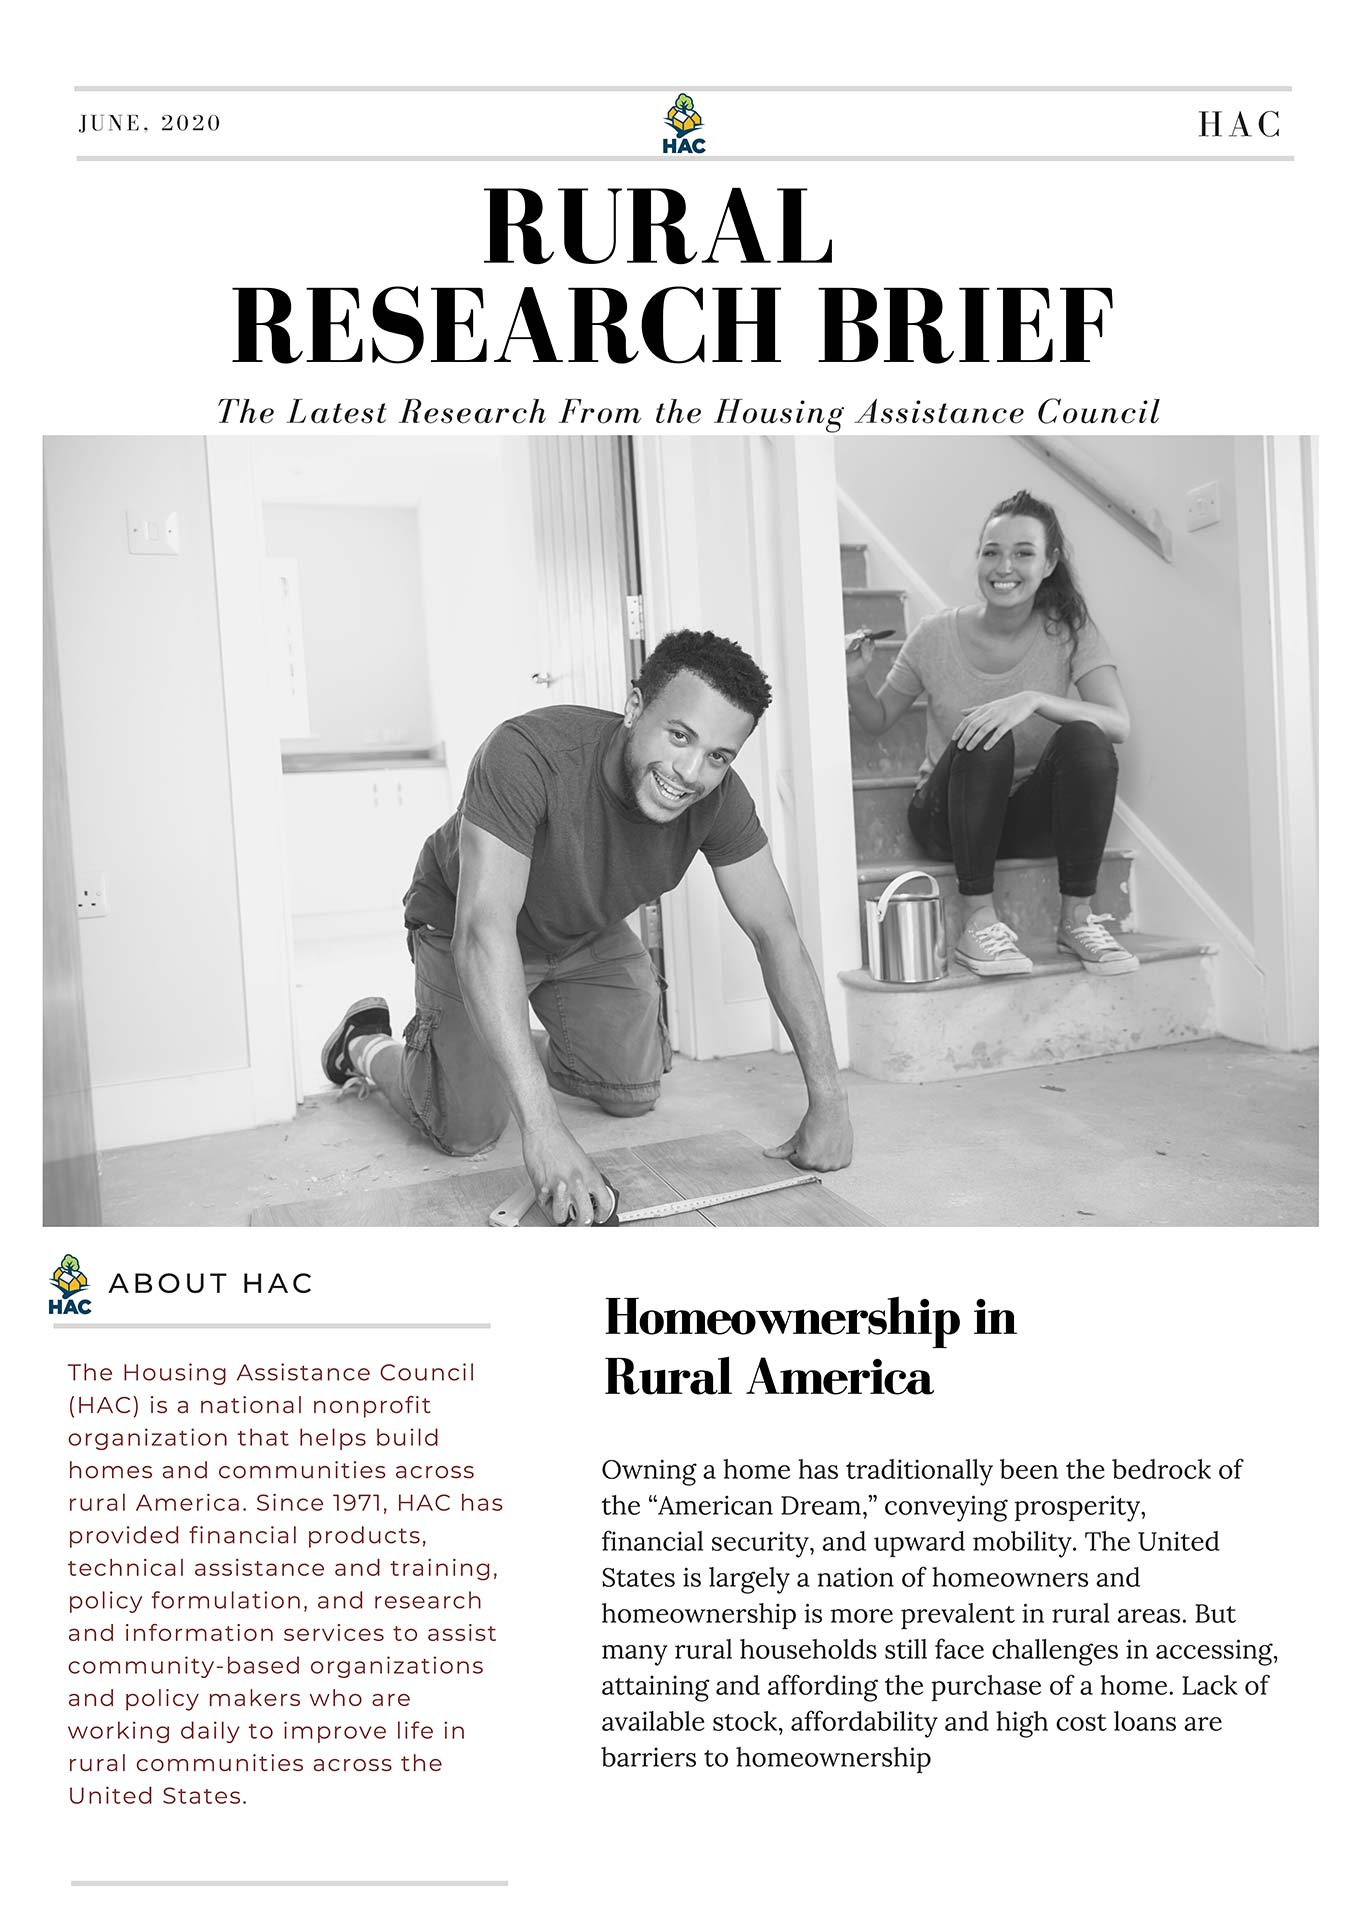 Homeownership in Rural America Research Brief Cover